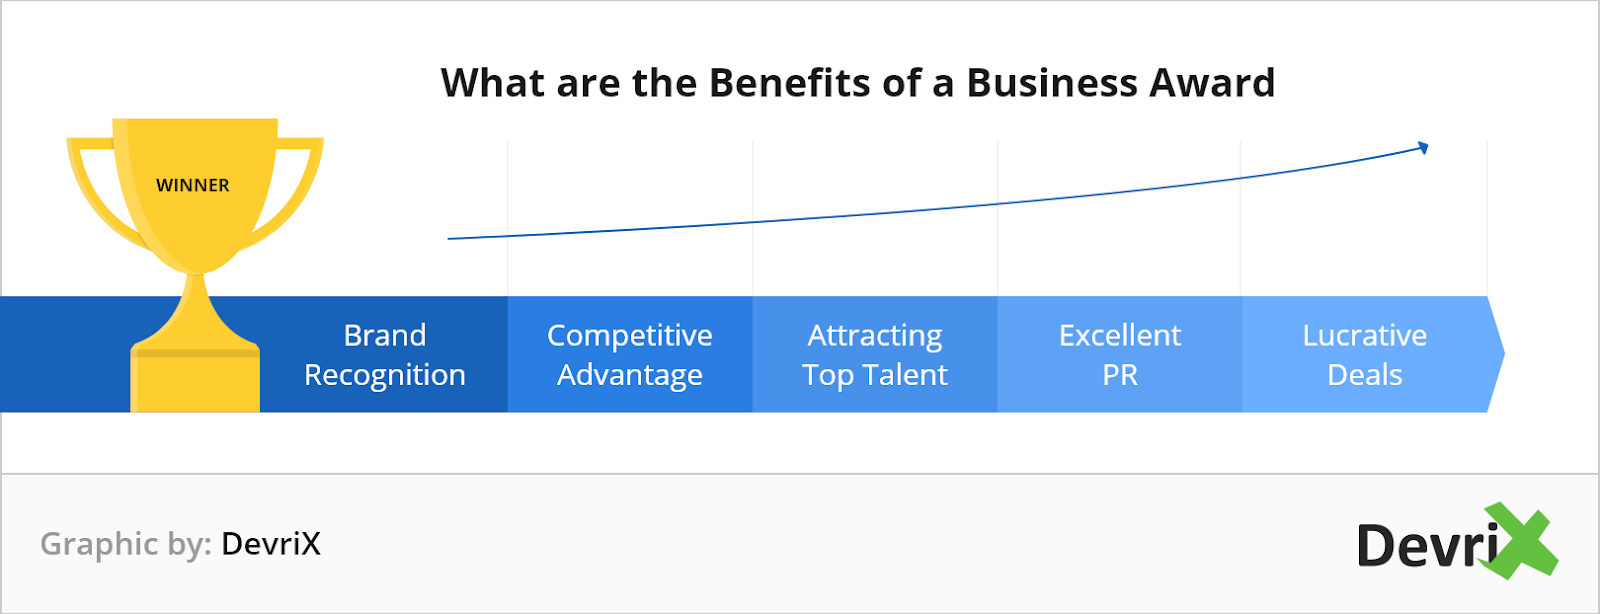 Benefits of a Business Award@2x